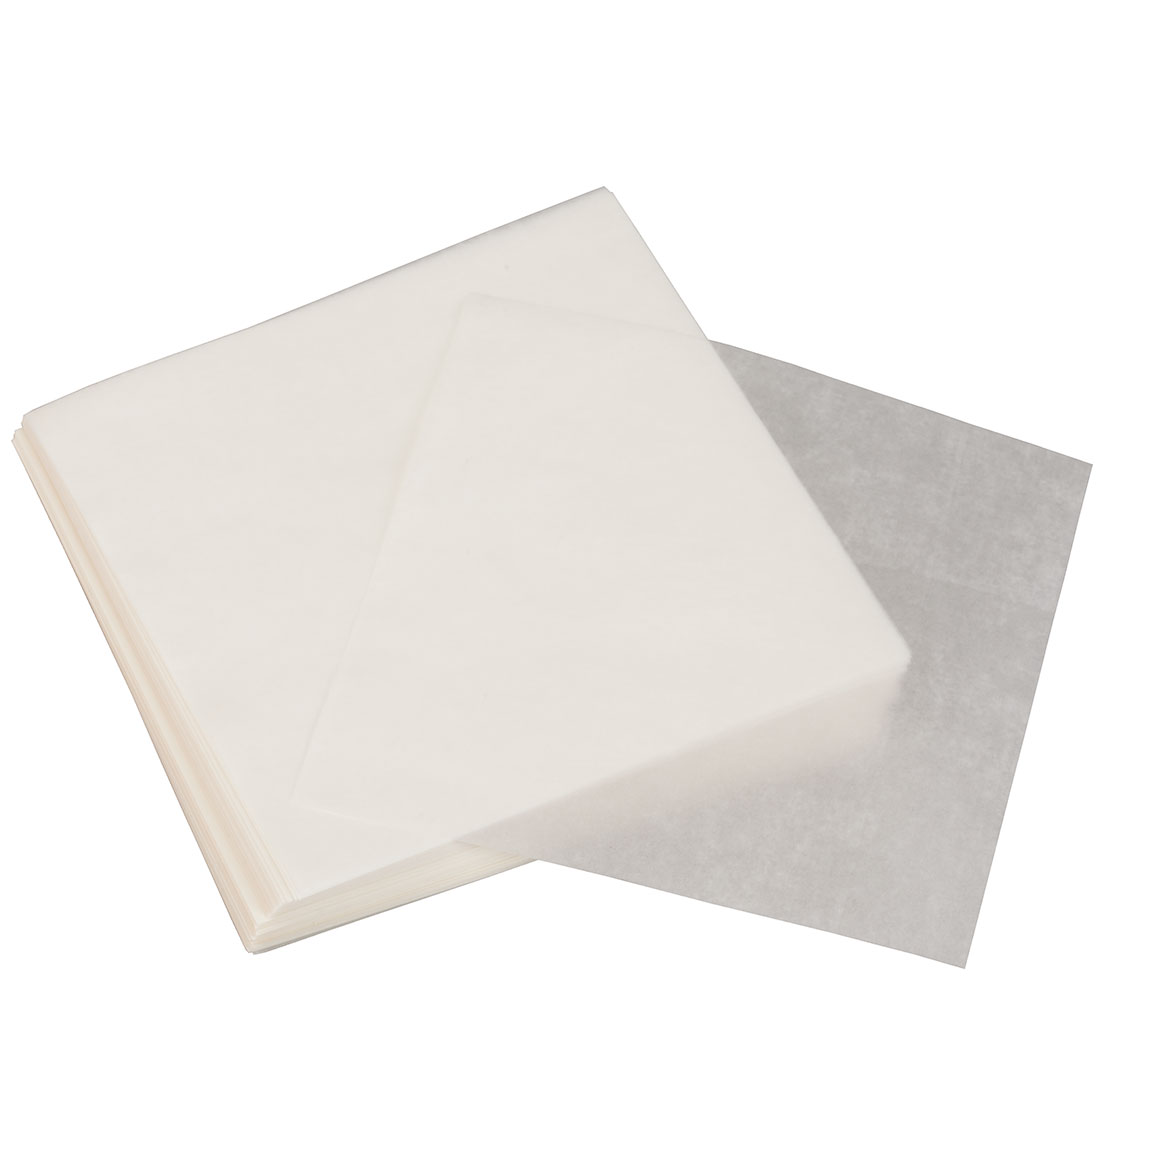 Dry Wax Paper Squares Set of 350-310751